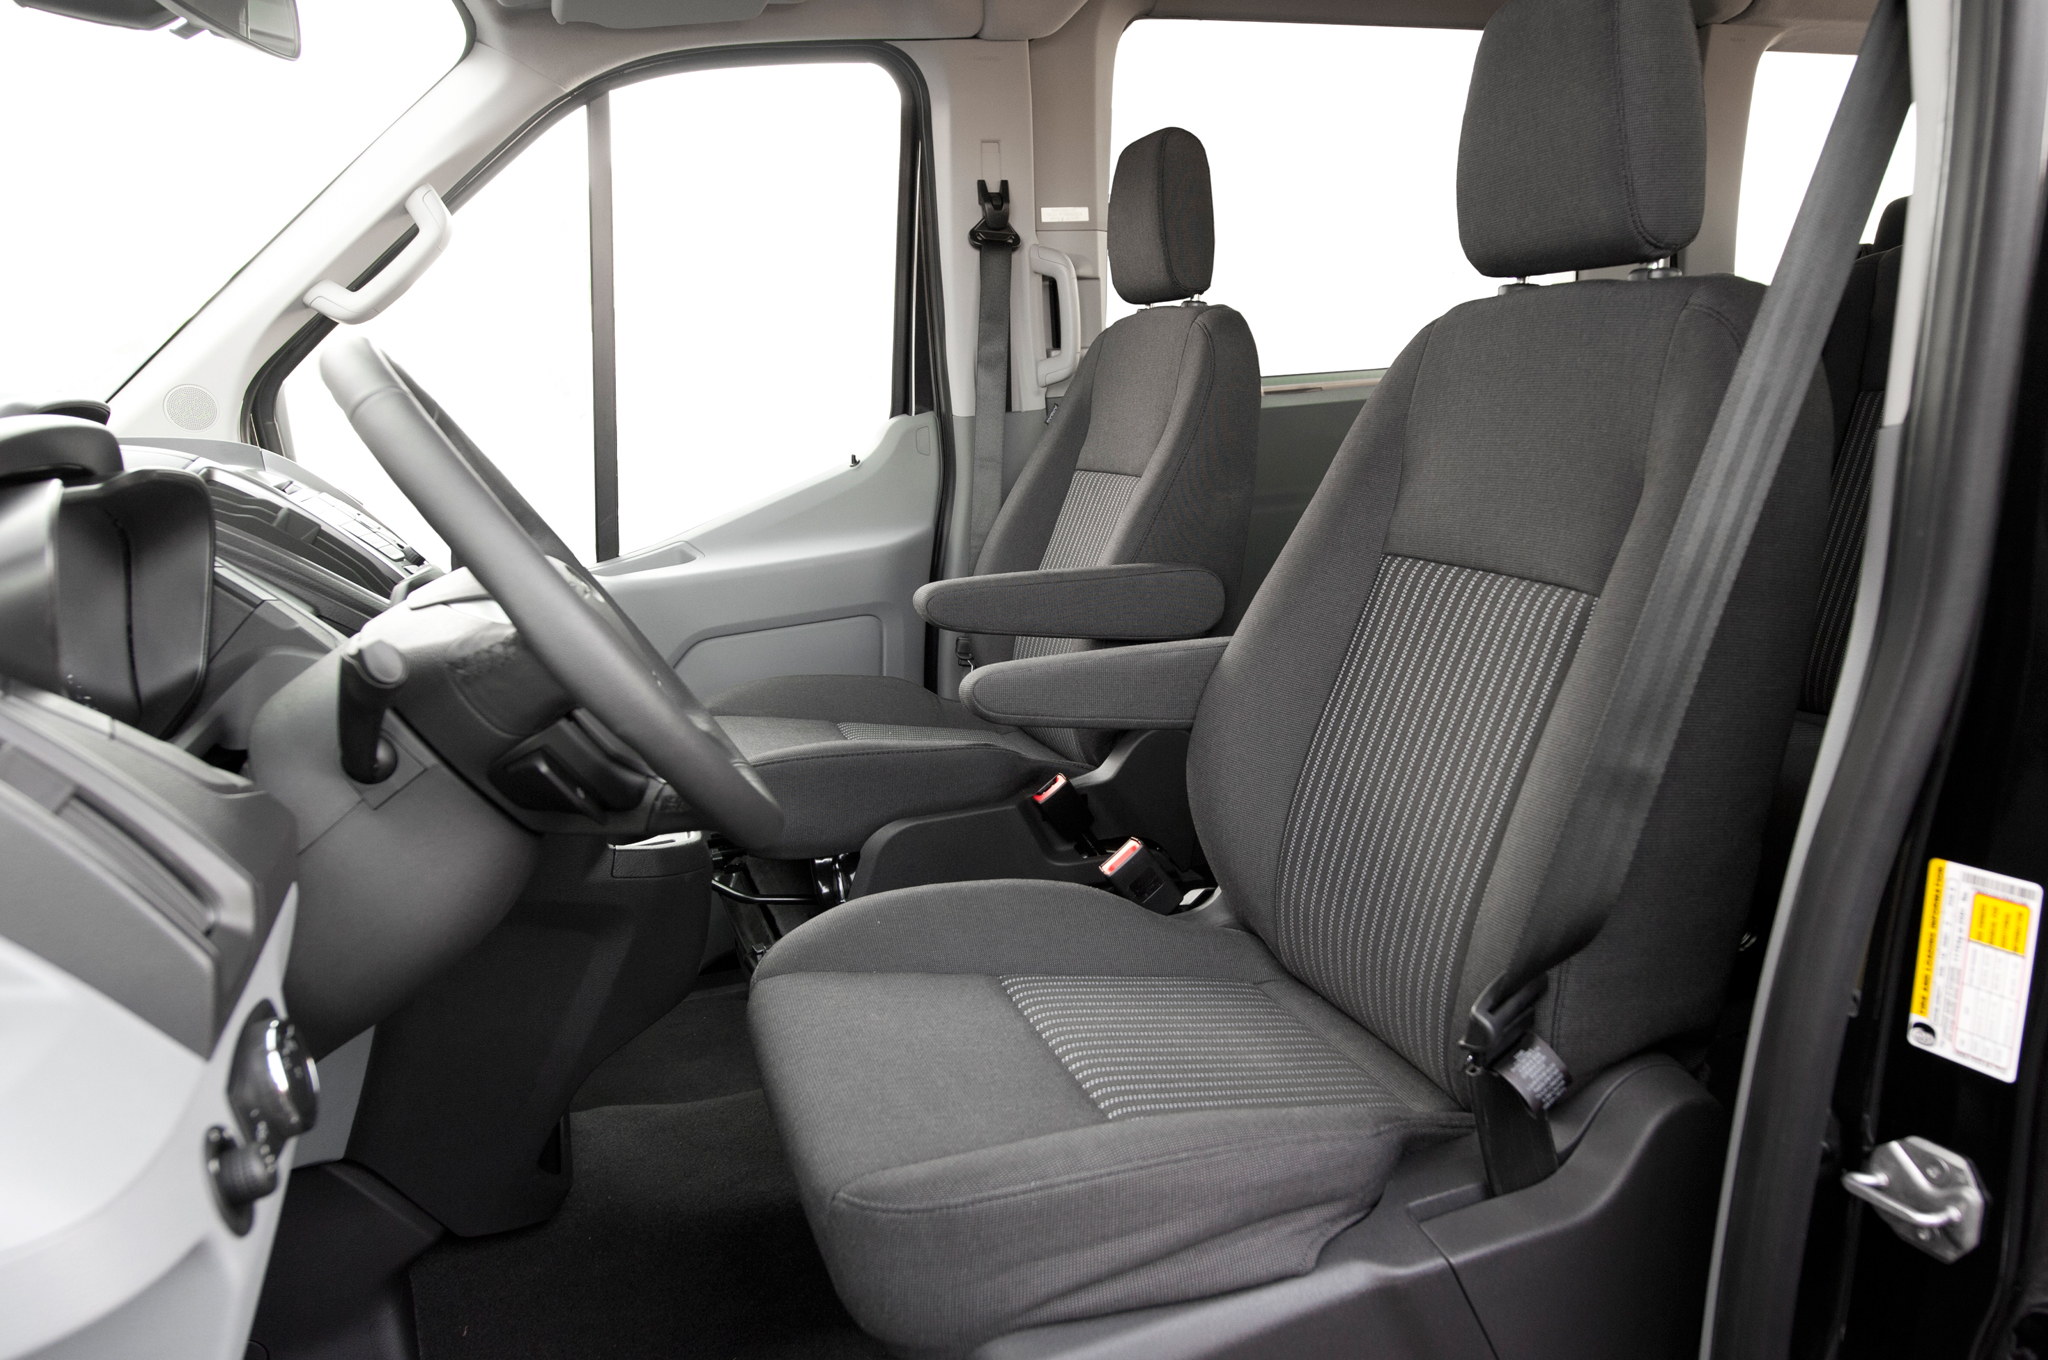 2015 Ford Transit 150 Front Seat Interior (Photo 7 of 13)